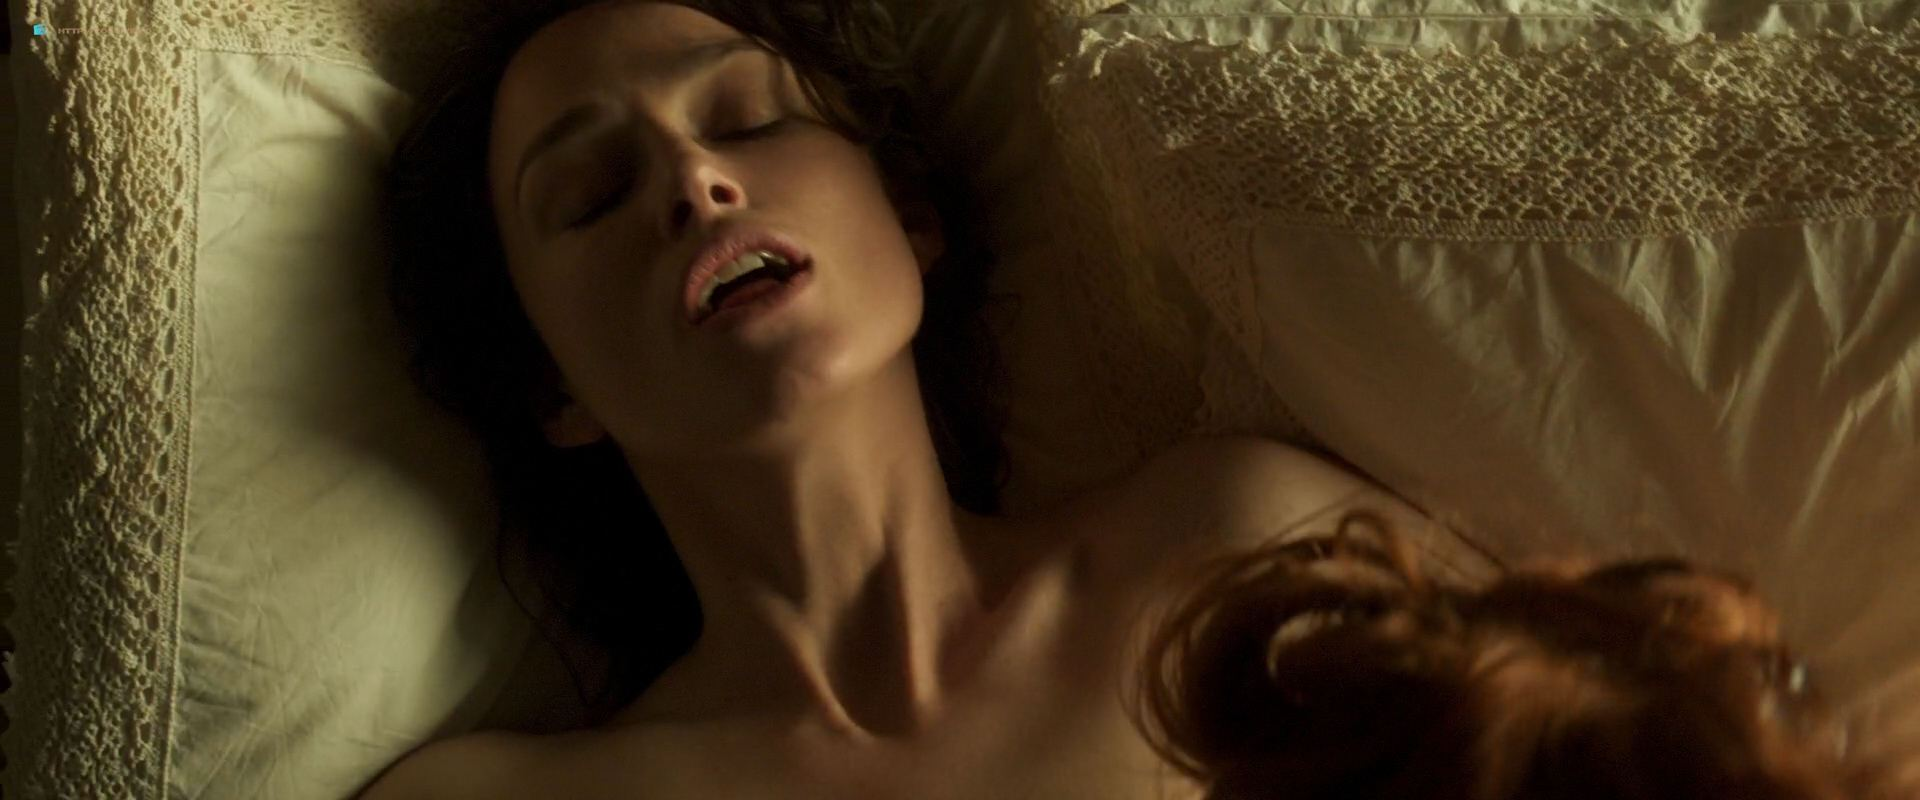 1104234453470_03_Keira-Knightley-nude-topless-and-lesbian-sex-with-Eleanor-Tomlinson-Colette-2018-HD-1080p-08.jpg